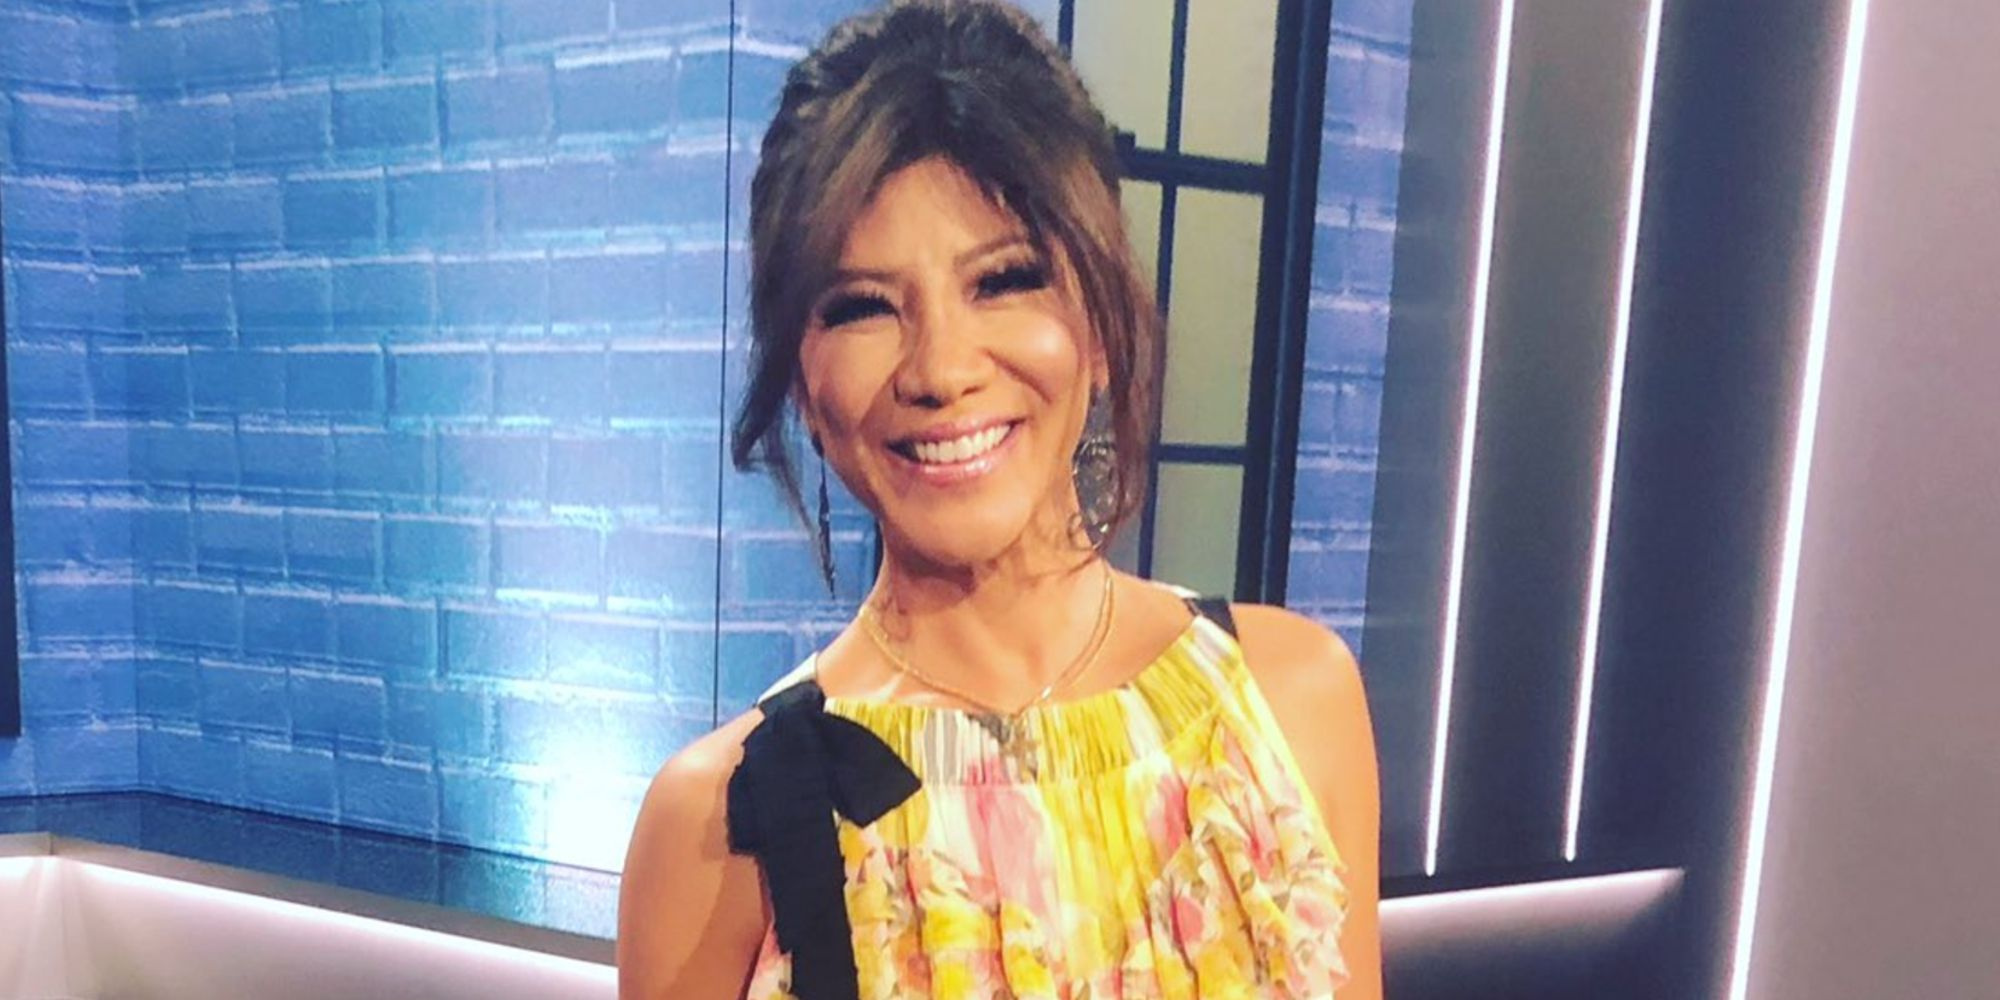 Big Brother: Why Julie Chen Moonves Wasn't Meant to Be Original Host